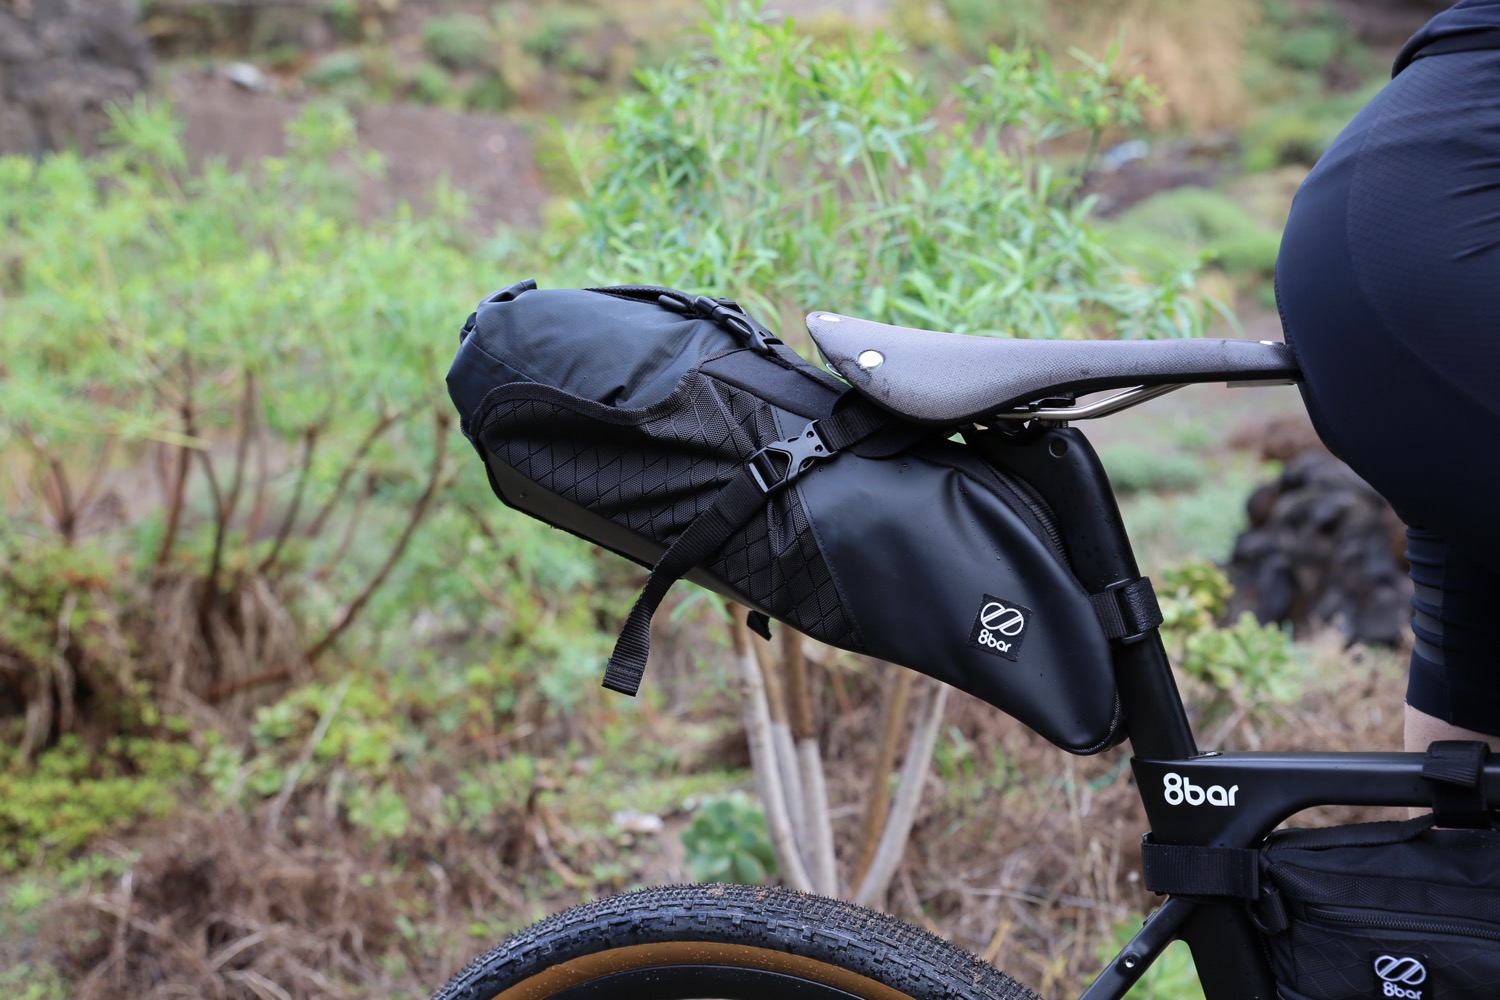 8bar-gran-canaria-008-saddlebag-bike-mood